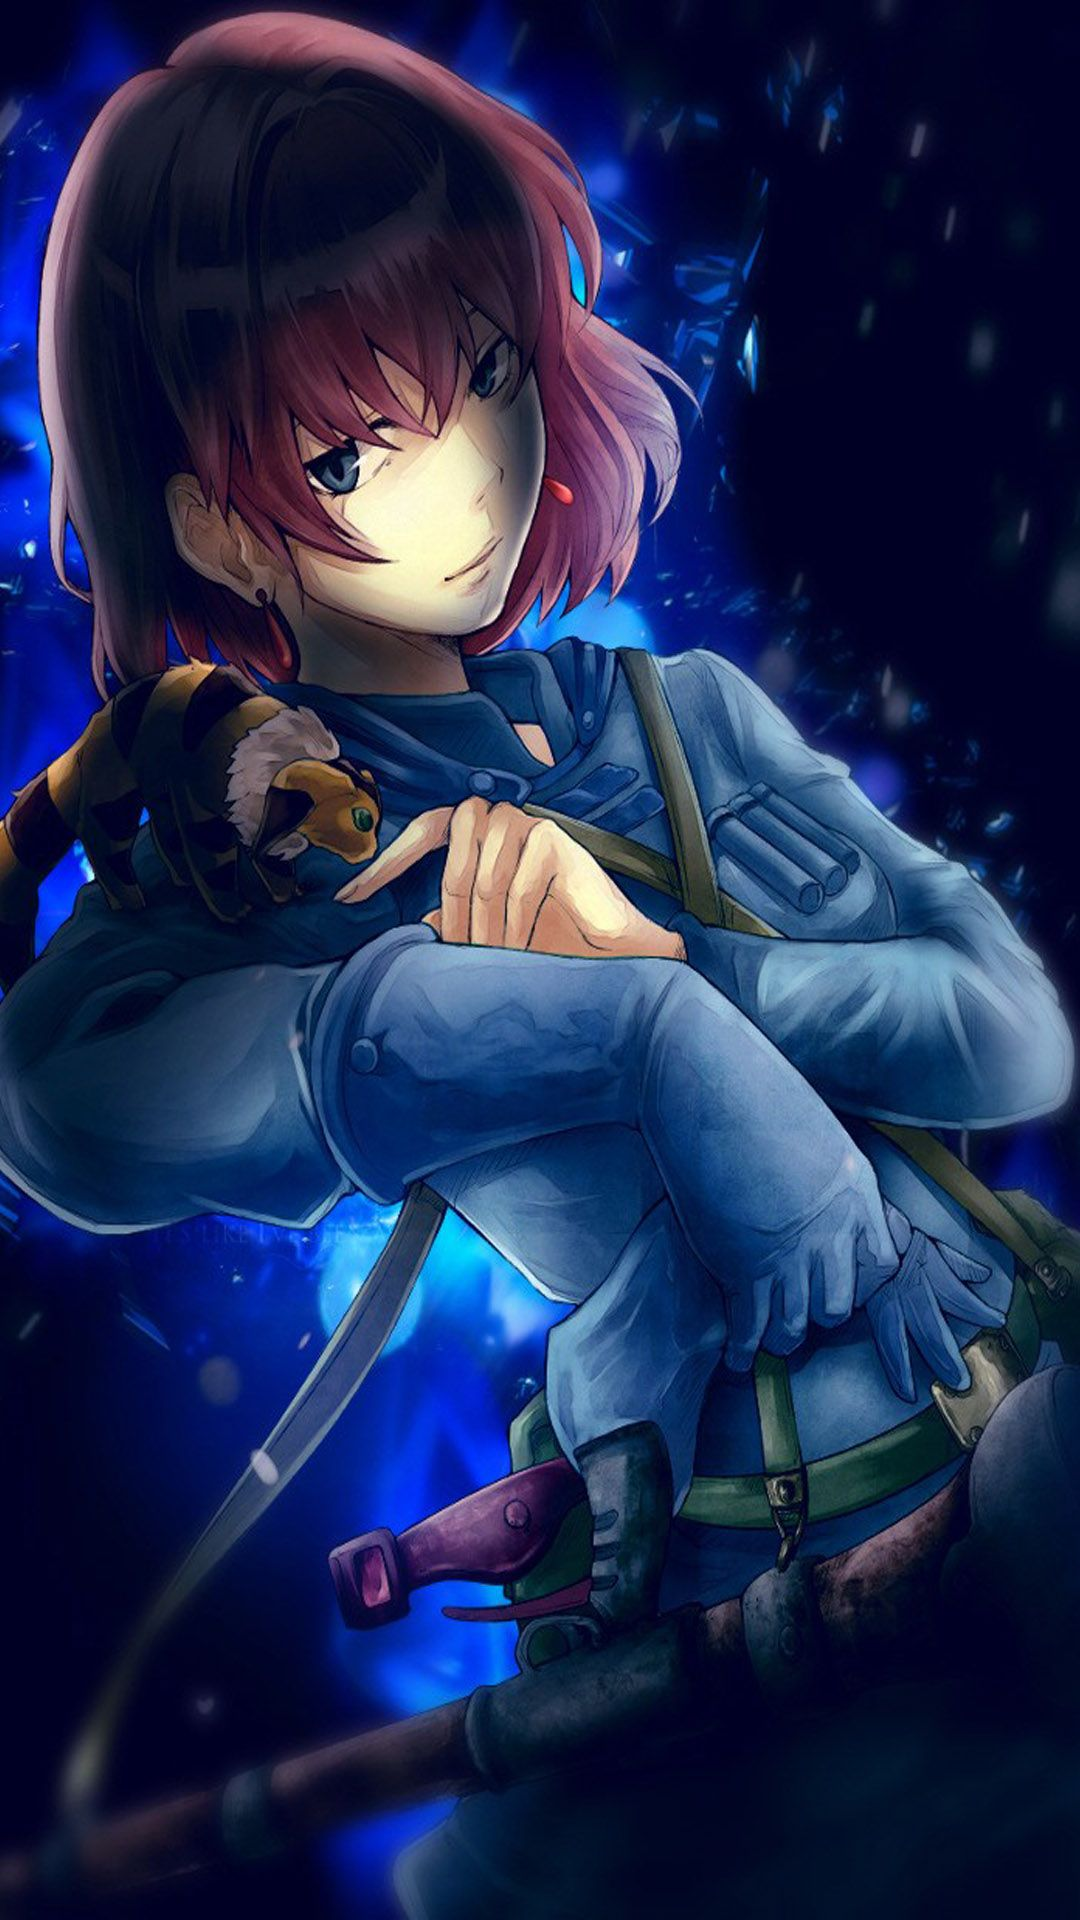 Anime Wallpapers Hupages Download Iphone Wallpapers Movie Night For Kids Anime Dog Animation Download anime wallpaper iphone